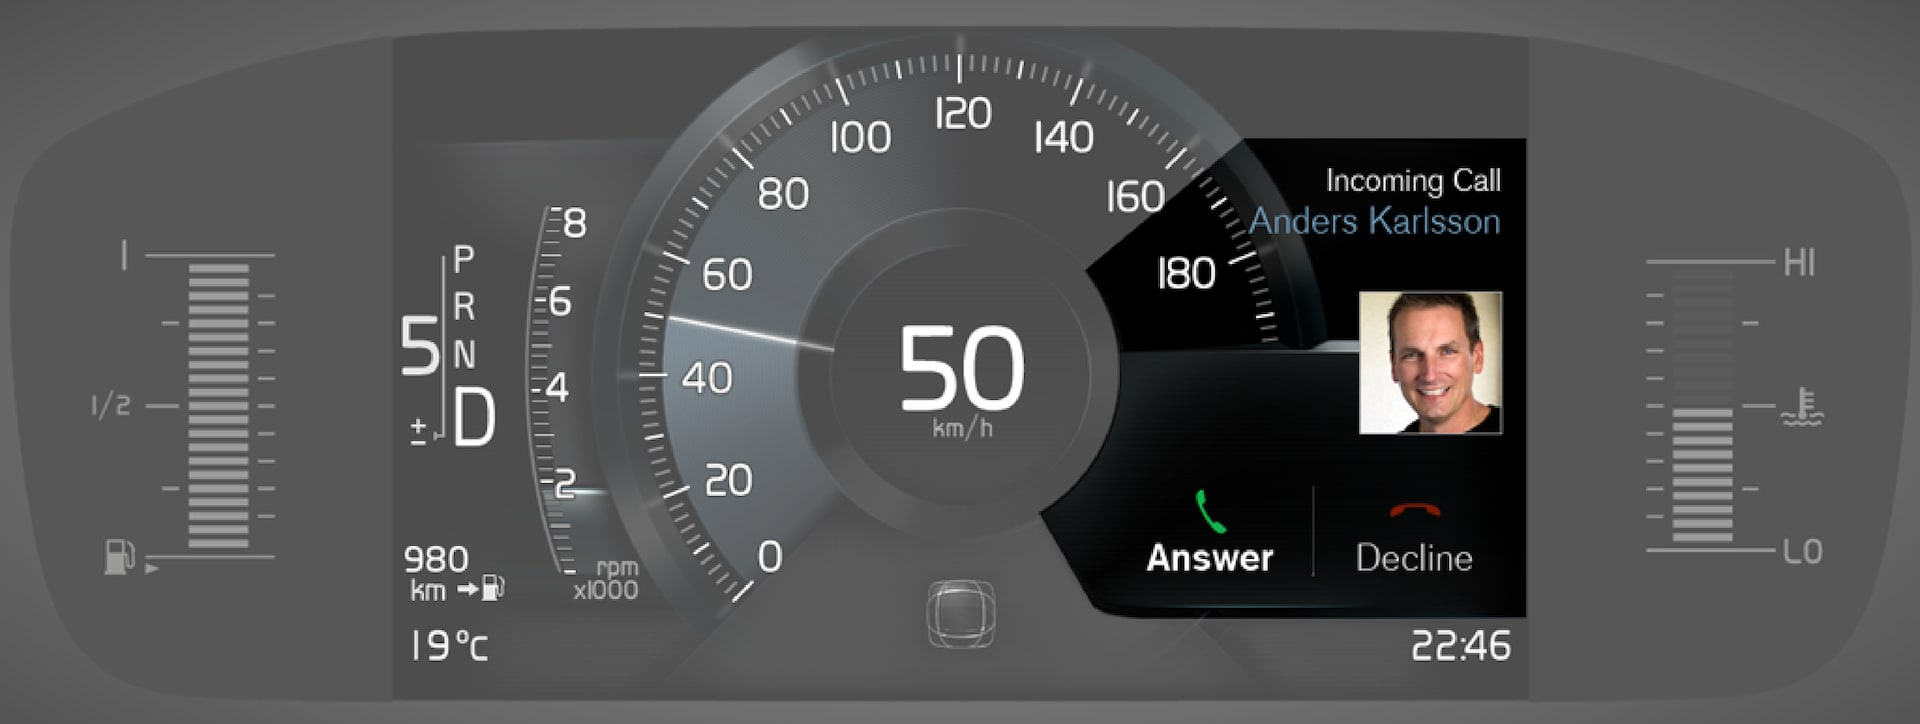 P5-1546–I+C–Message in driver display 8